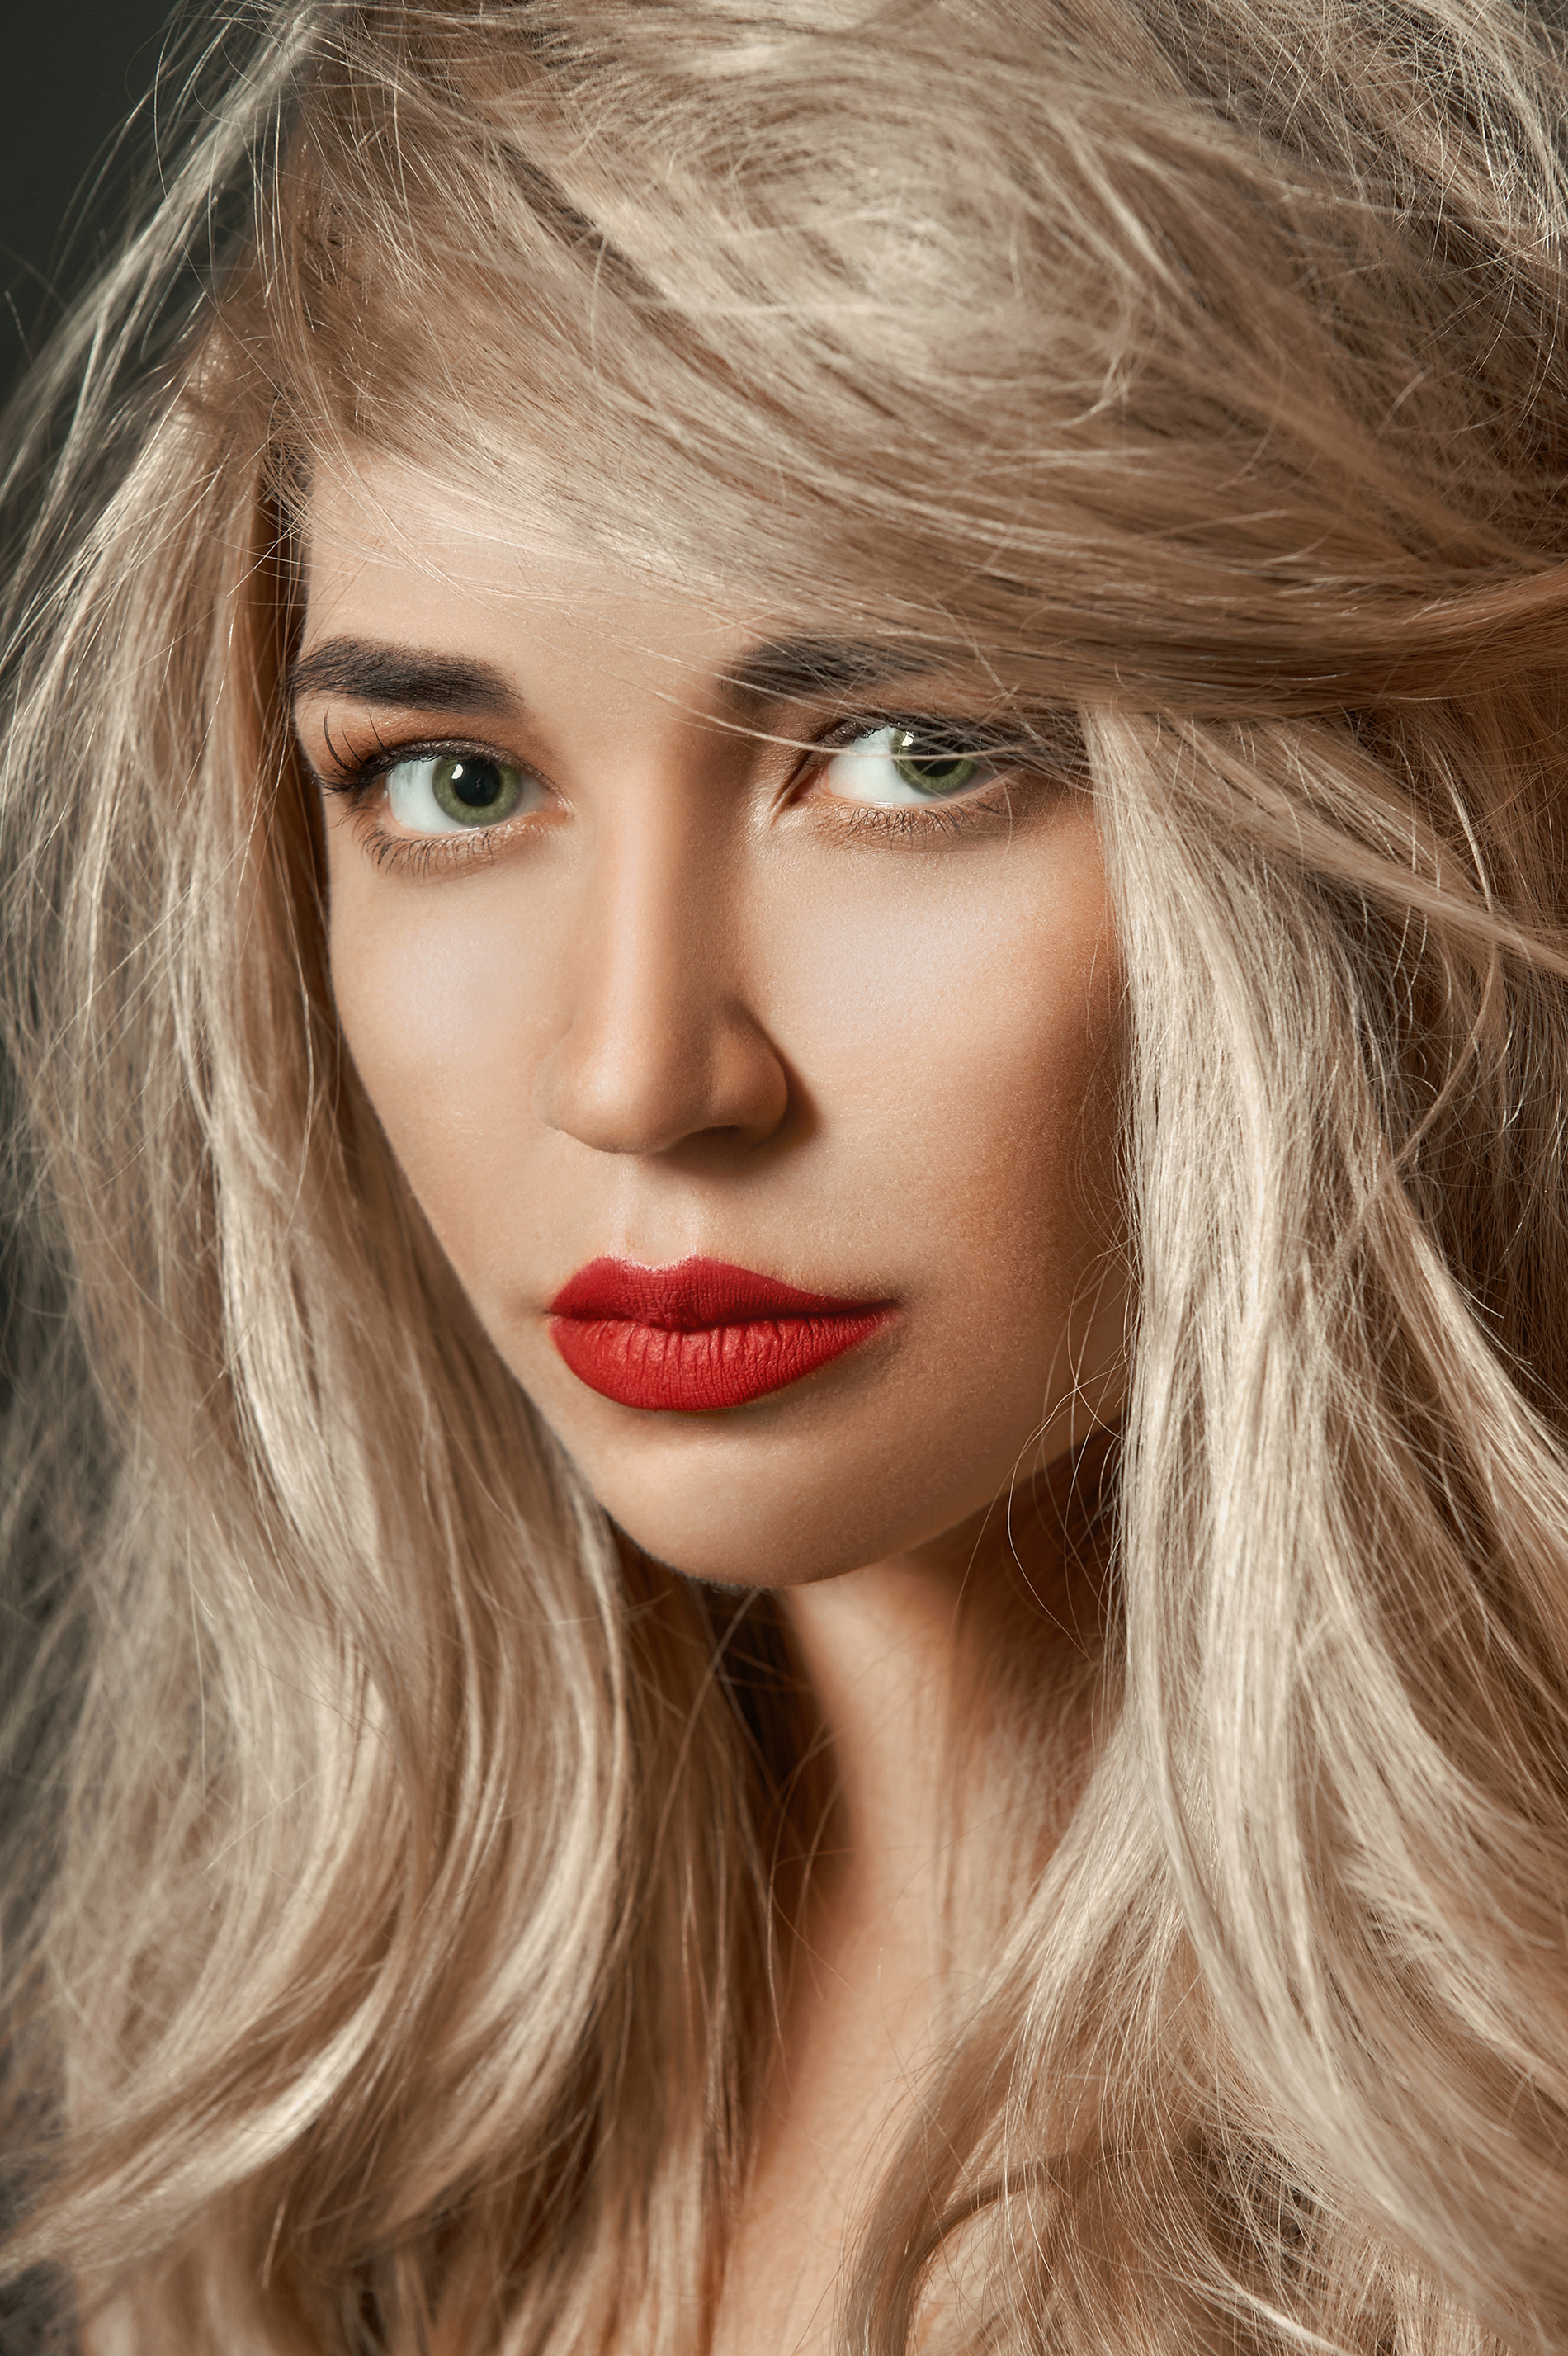 Blonde red lips makeup model 52980